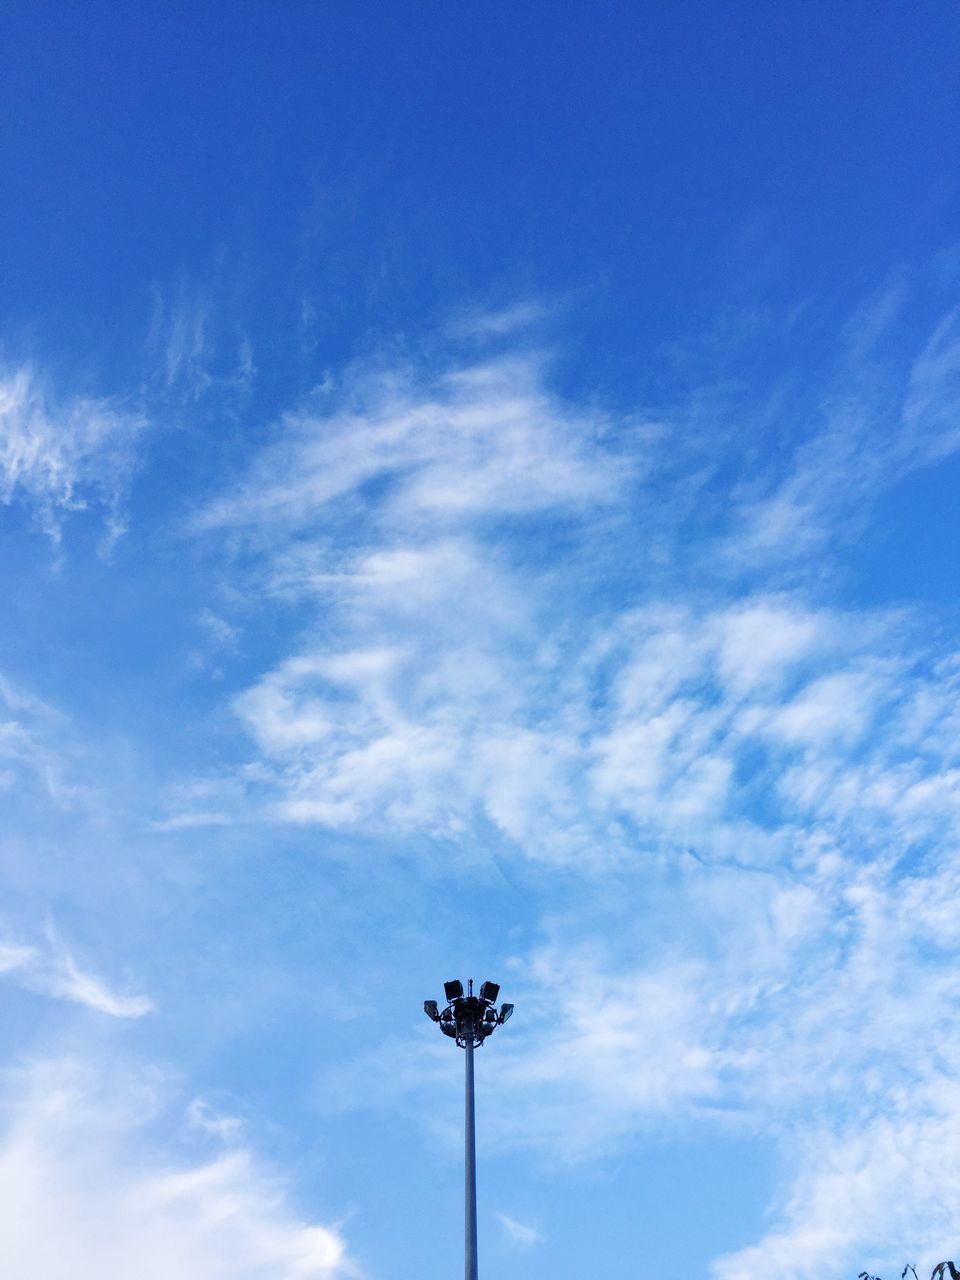 low angle view, sky, blue, cloud - sky, day, outdoors, no people, nature